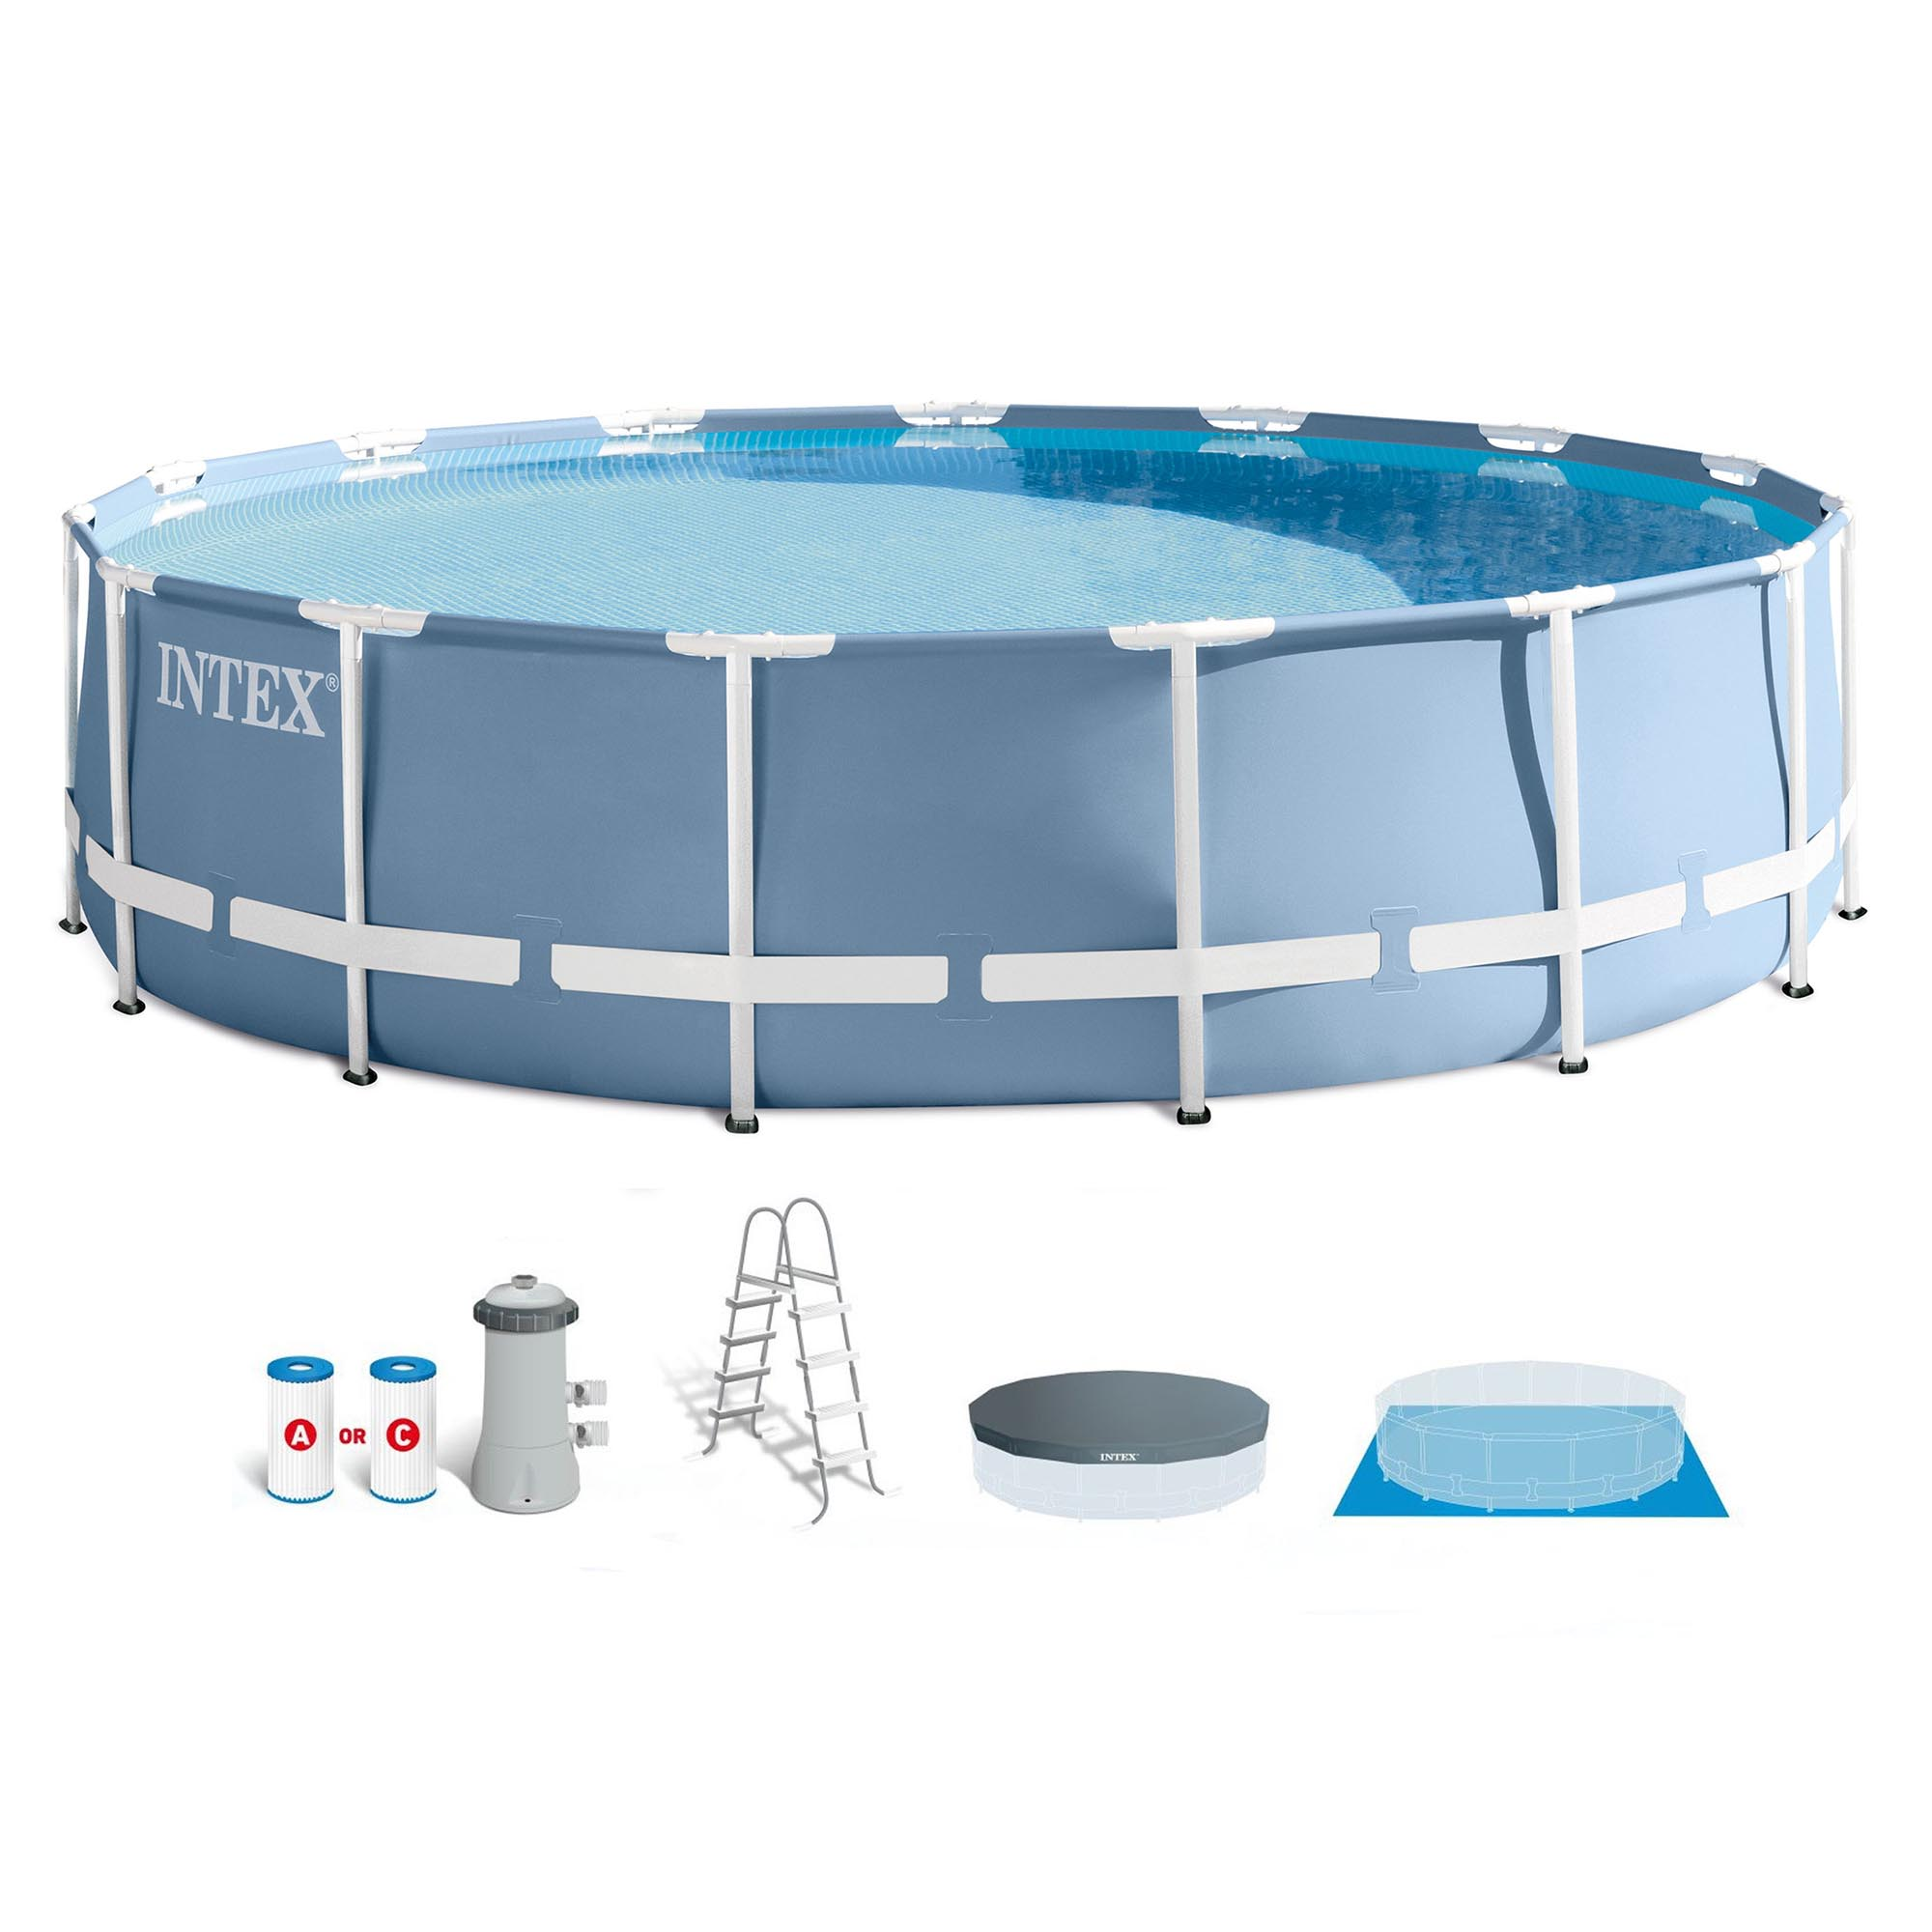 Intex 15 ft. x 42 in. Prism Frame Swimming Pool with 1,000 GPH Filter Pump